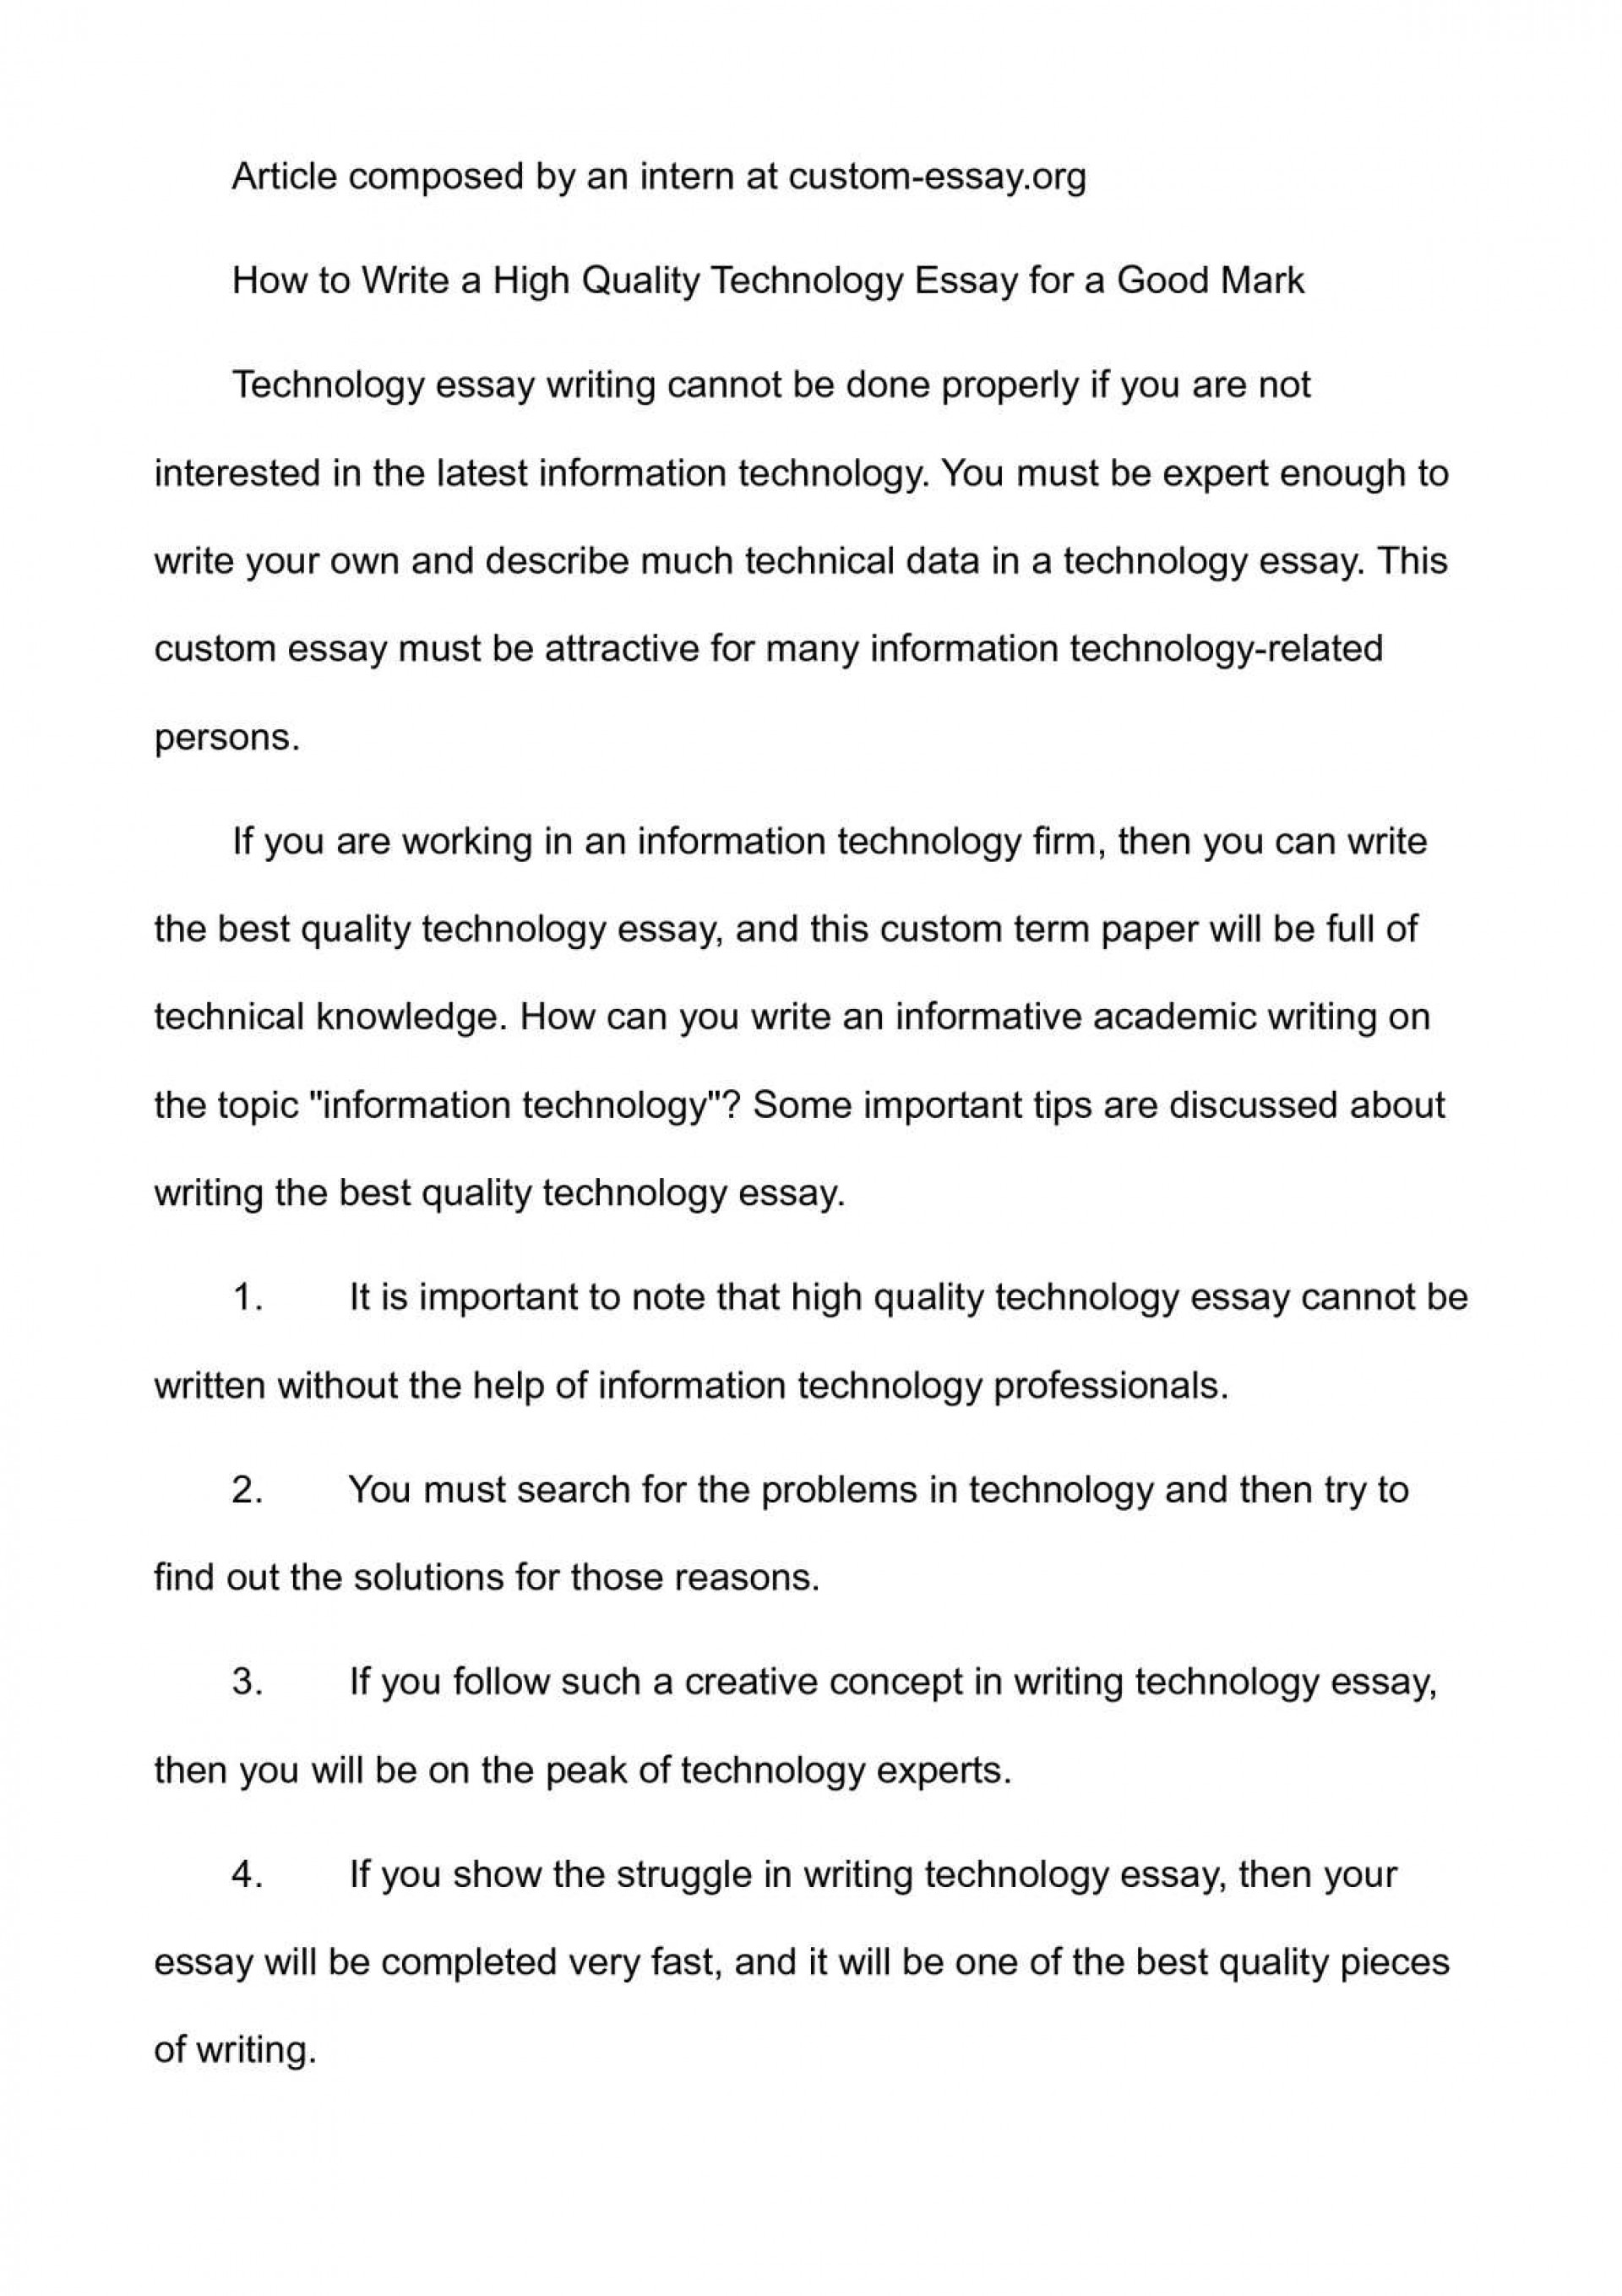 001 P1 Essay On Technology Breathtaking Advancement Reflection In The Classroom Technological Advancements And Their Ill-effects 1920